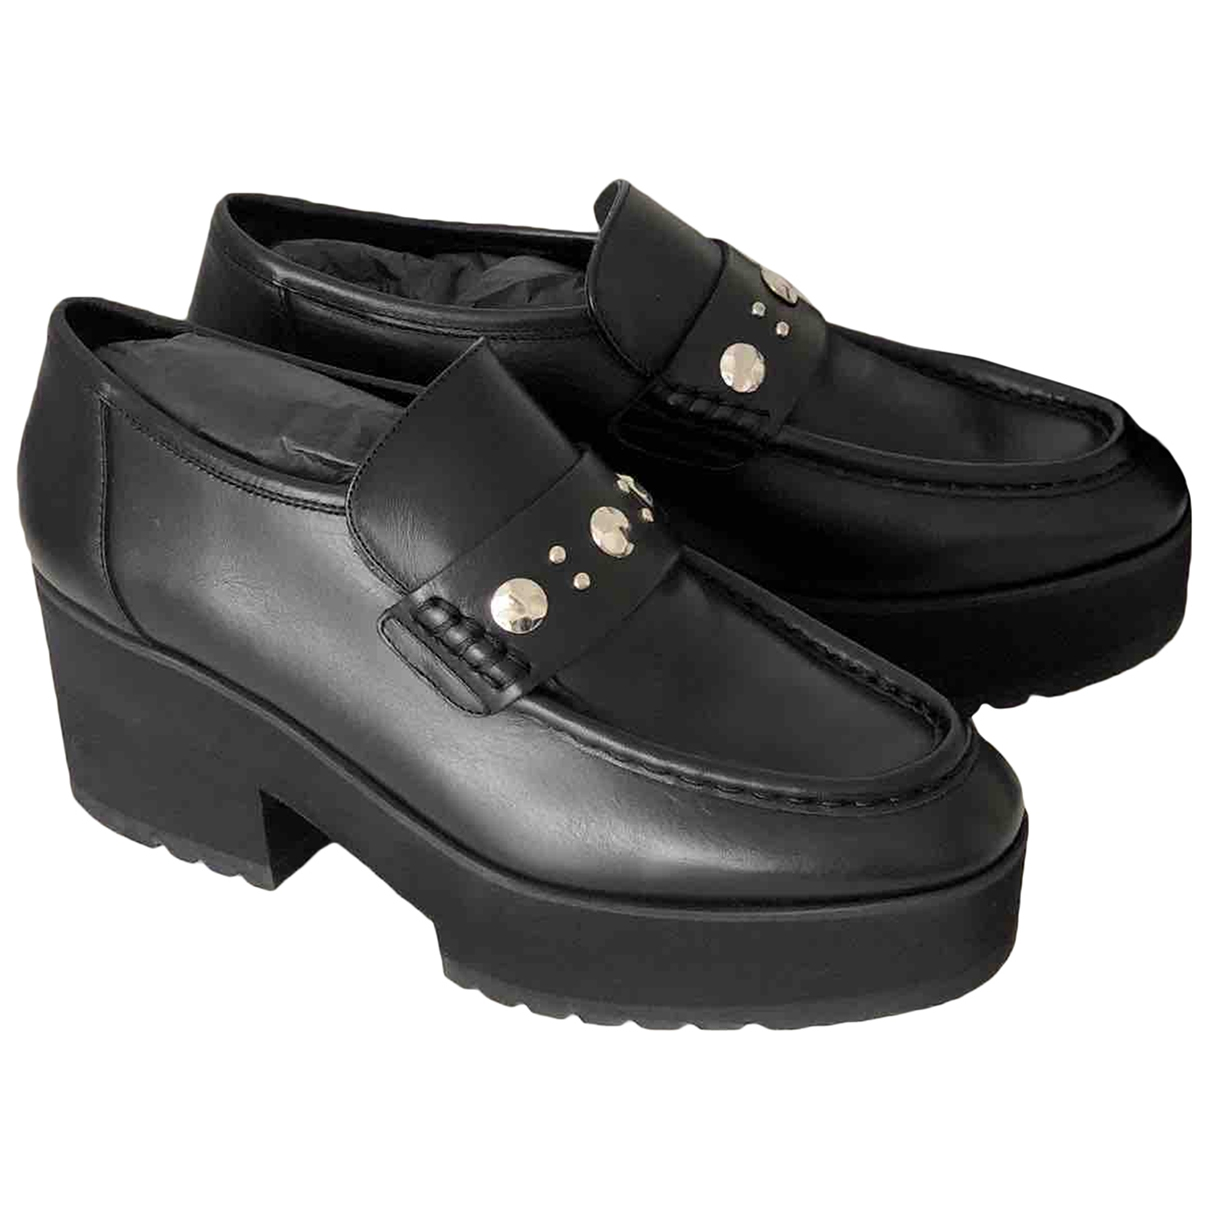 Maje \N Black Leather Flats for Women 39 EU